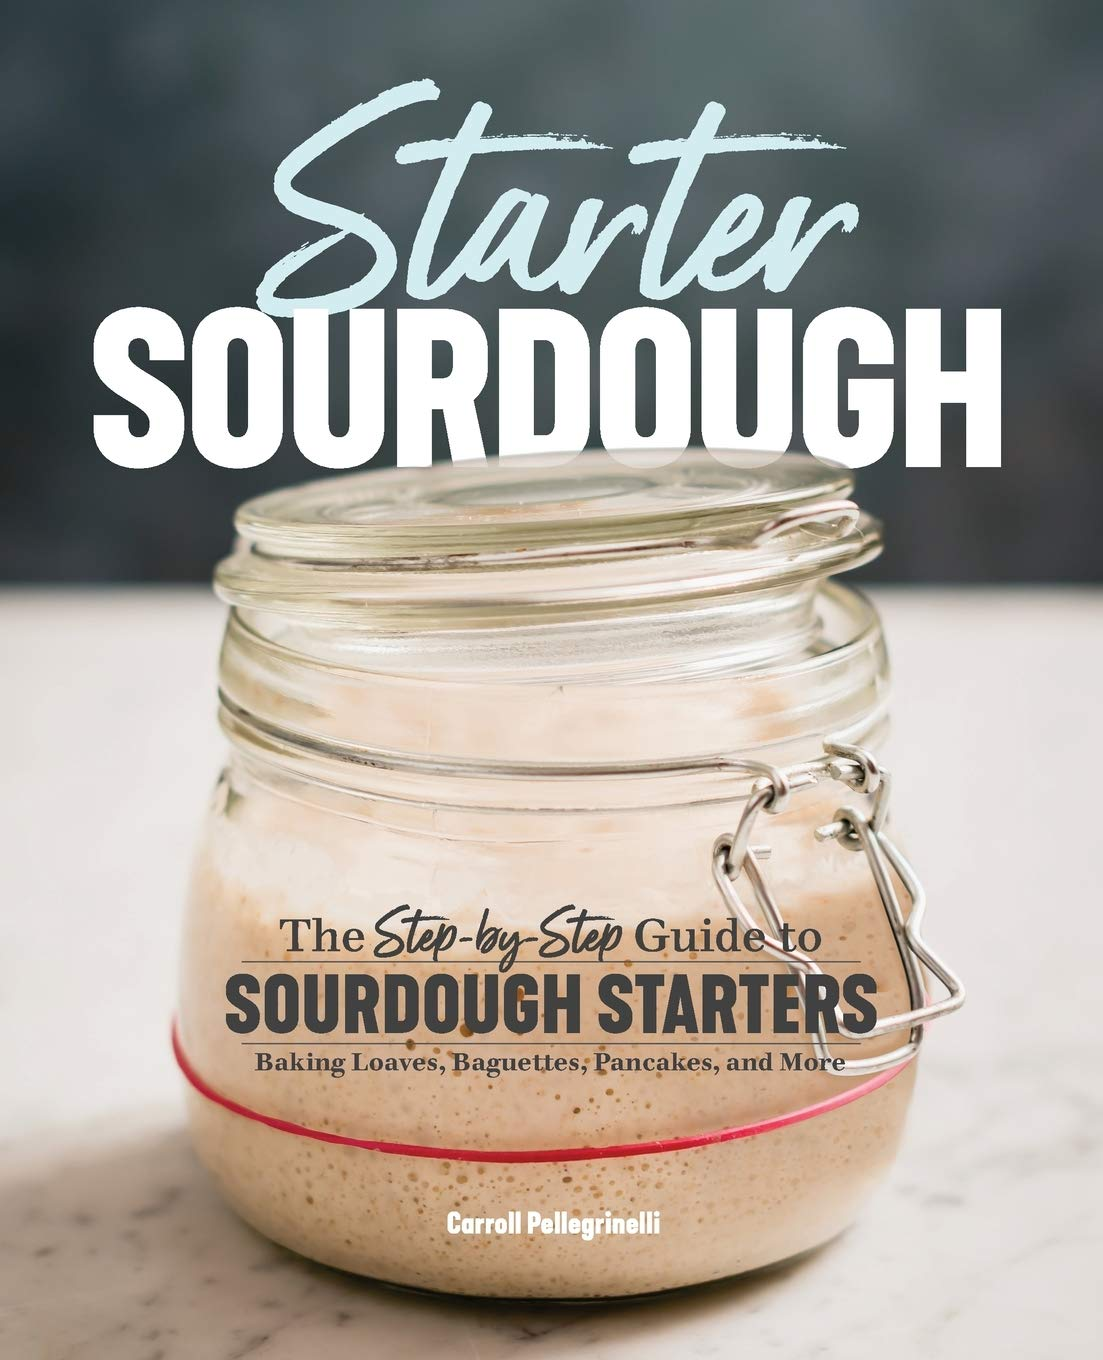 BUY this book: Starter Sourdough: The Step-by-Step Guide to Sourdough Starters